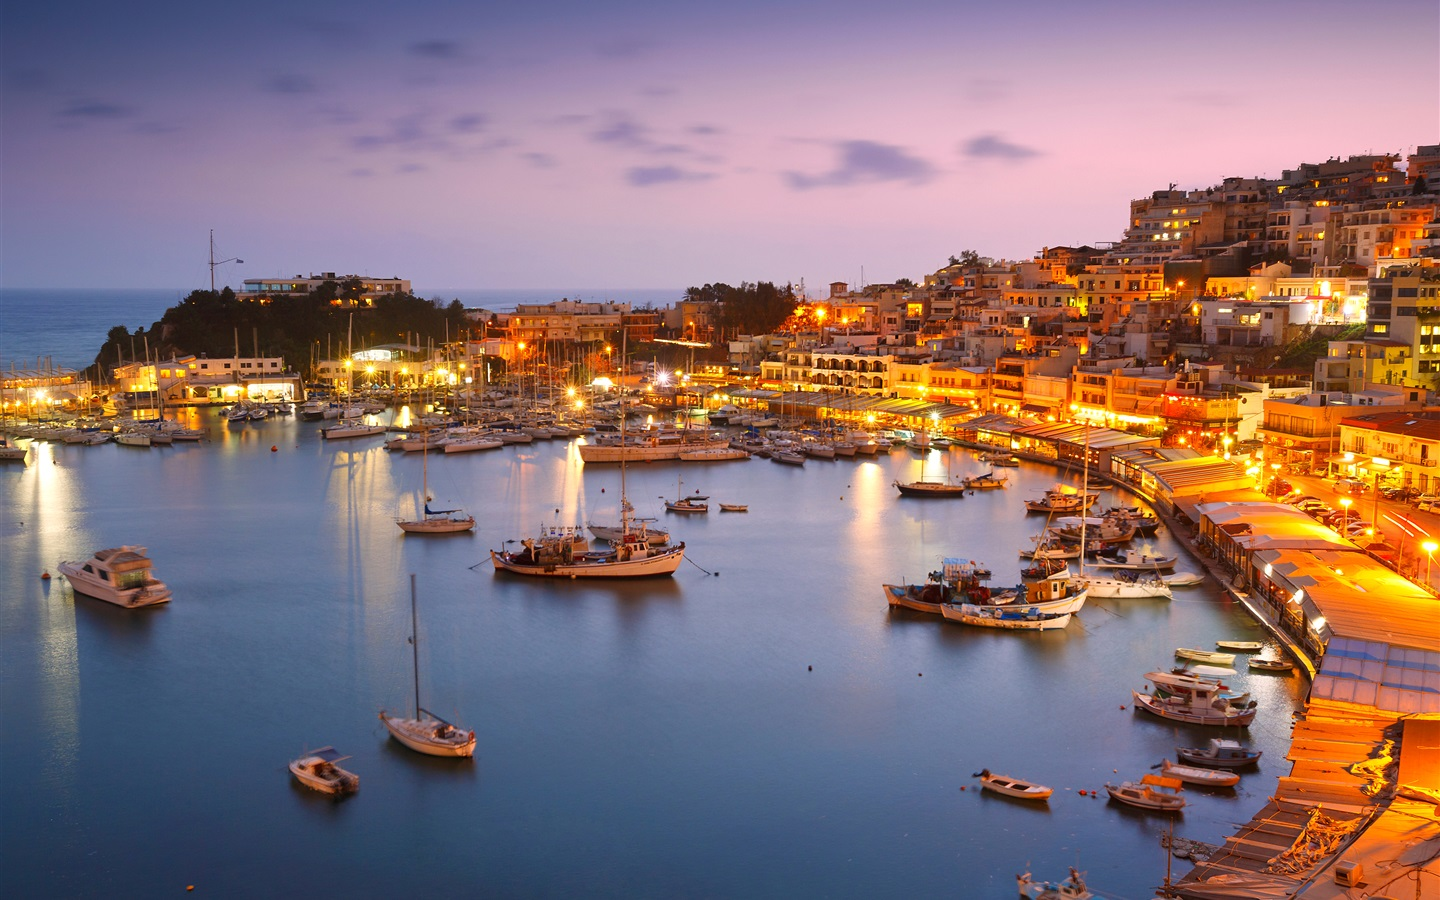 Best Wallpaper Night Greece - Greece-Athens-coast-sea-yachts-pier-houses-night-lights_1440x900  Gallery-27307.jpg